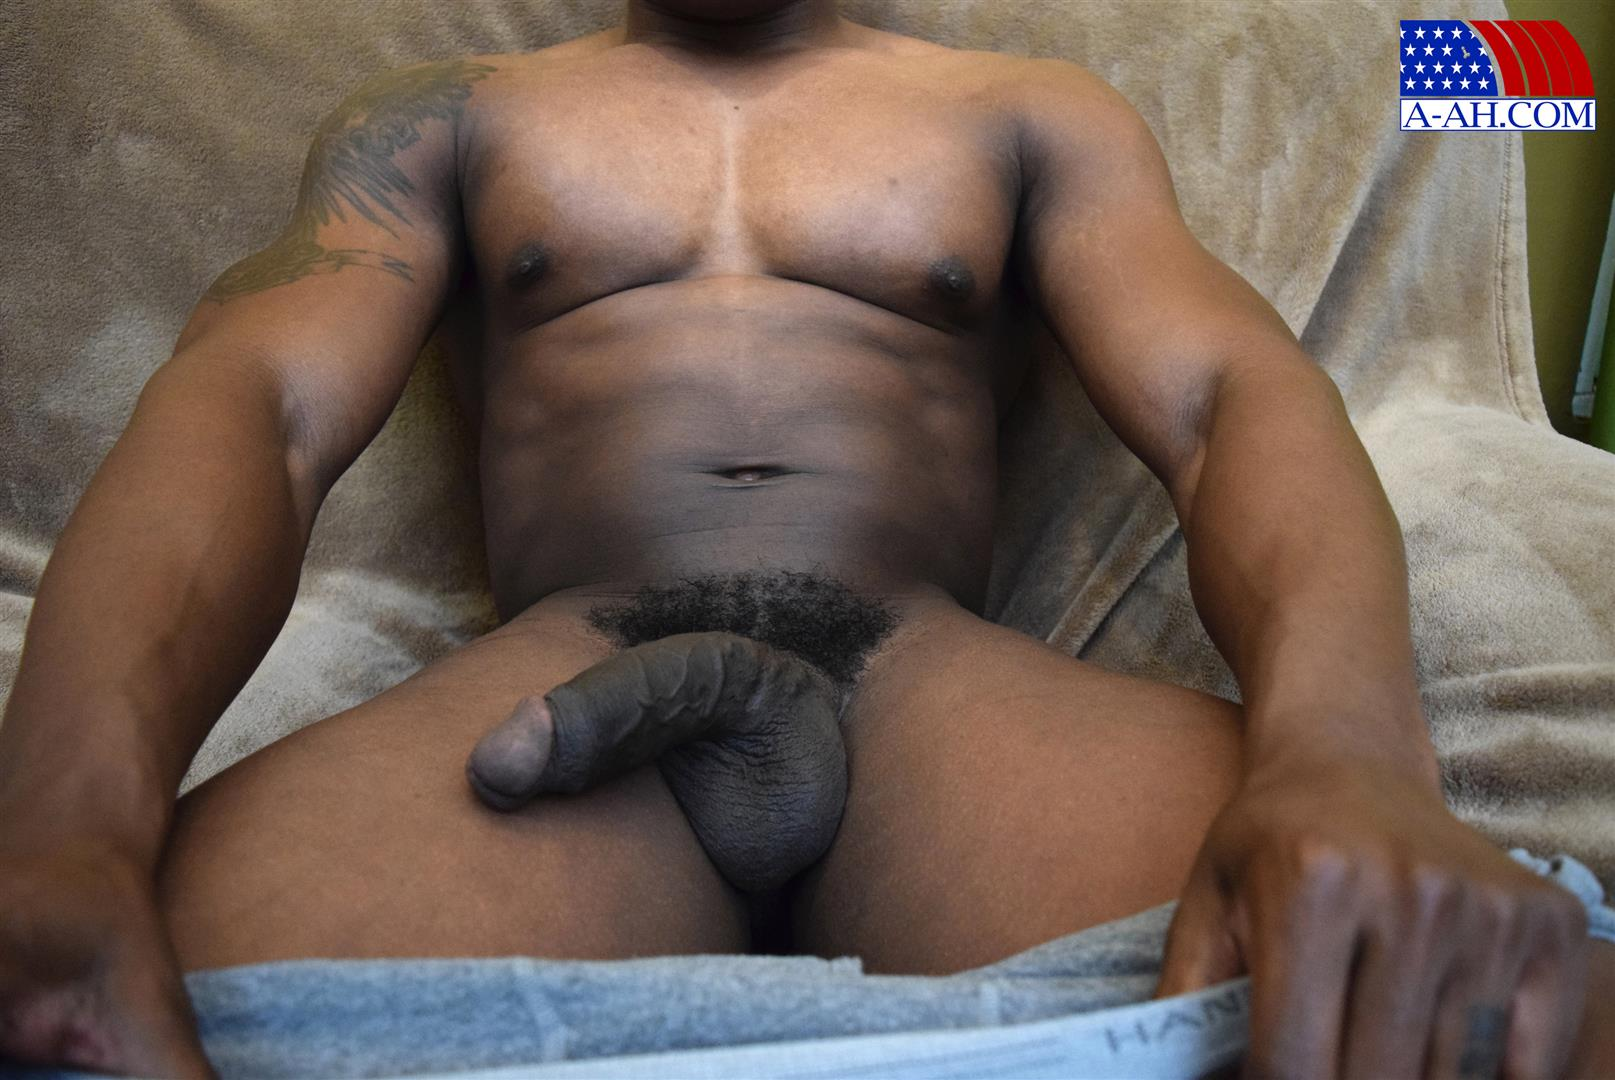 All American Heroes Sean Muscle Navy Petty Officer Jerking Big Black Cock Amateur Gay Porn 09